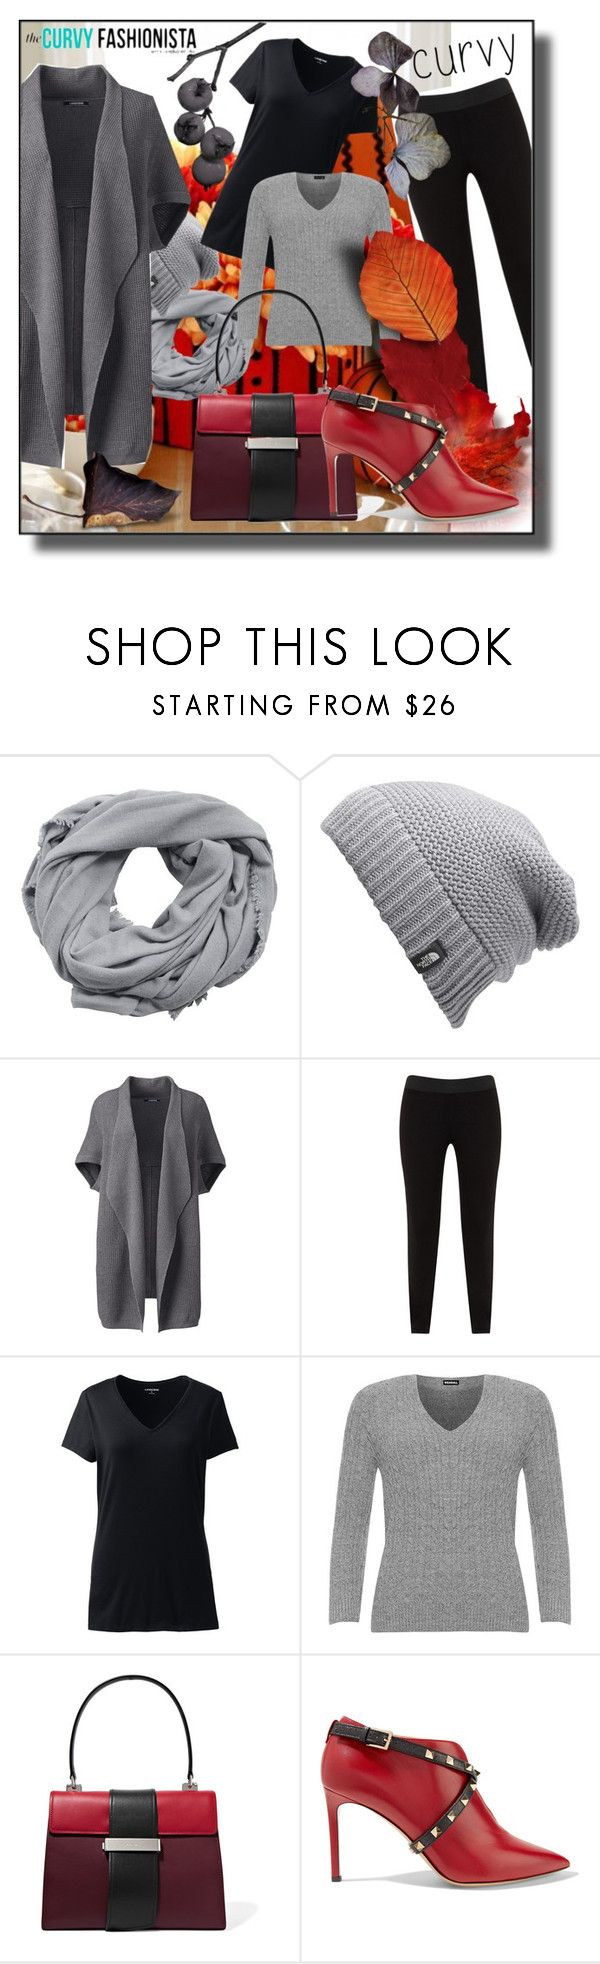 """Curvy Fall"" by kelly-floramoon-legg ❤ liked on Polyvore featuring MANGO, The North Face, Lands' End, JunaRose, WearAll, Prada, Valentino, autumn, plussize and plus size clothing"